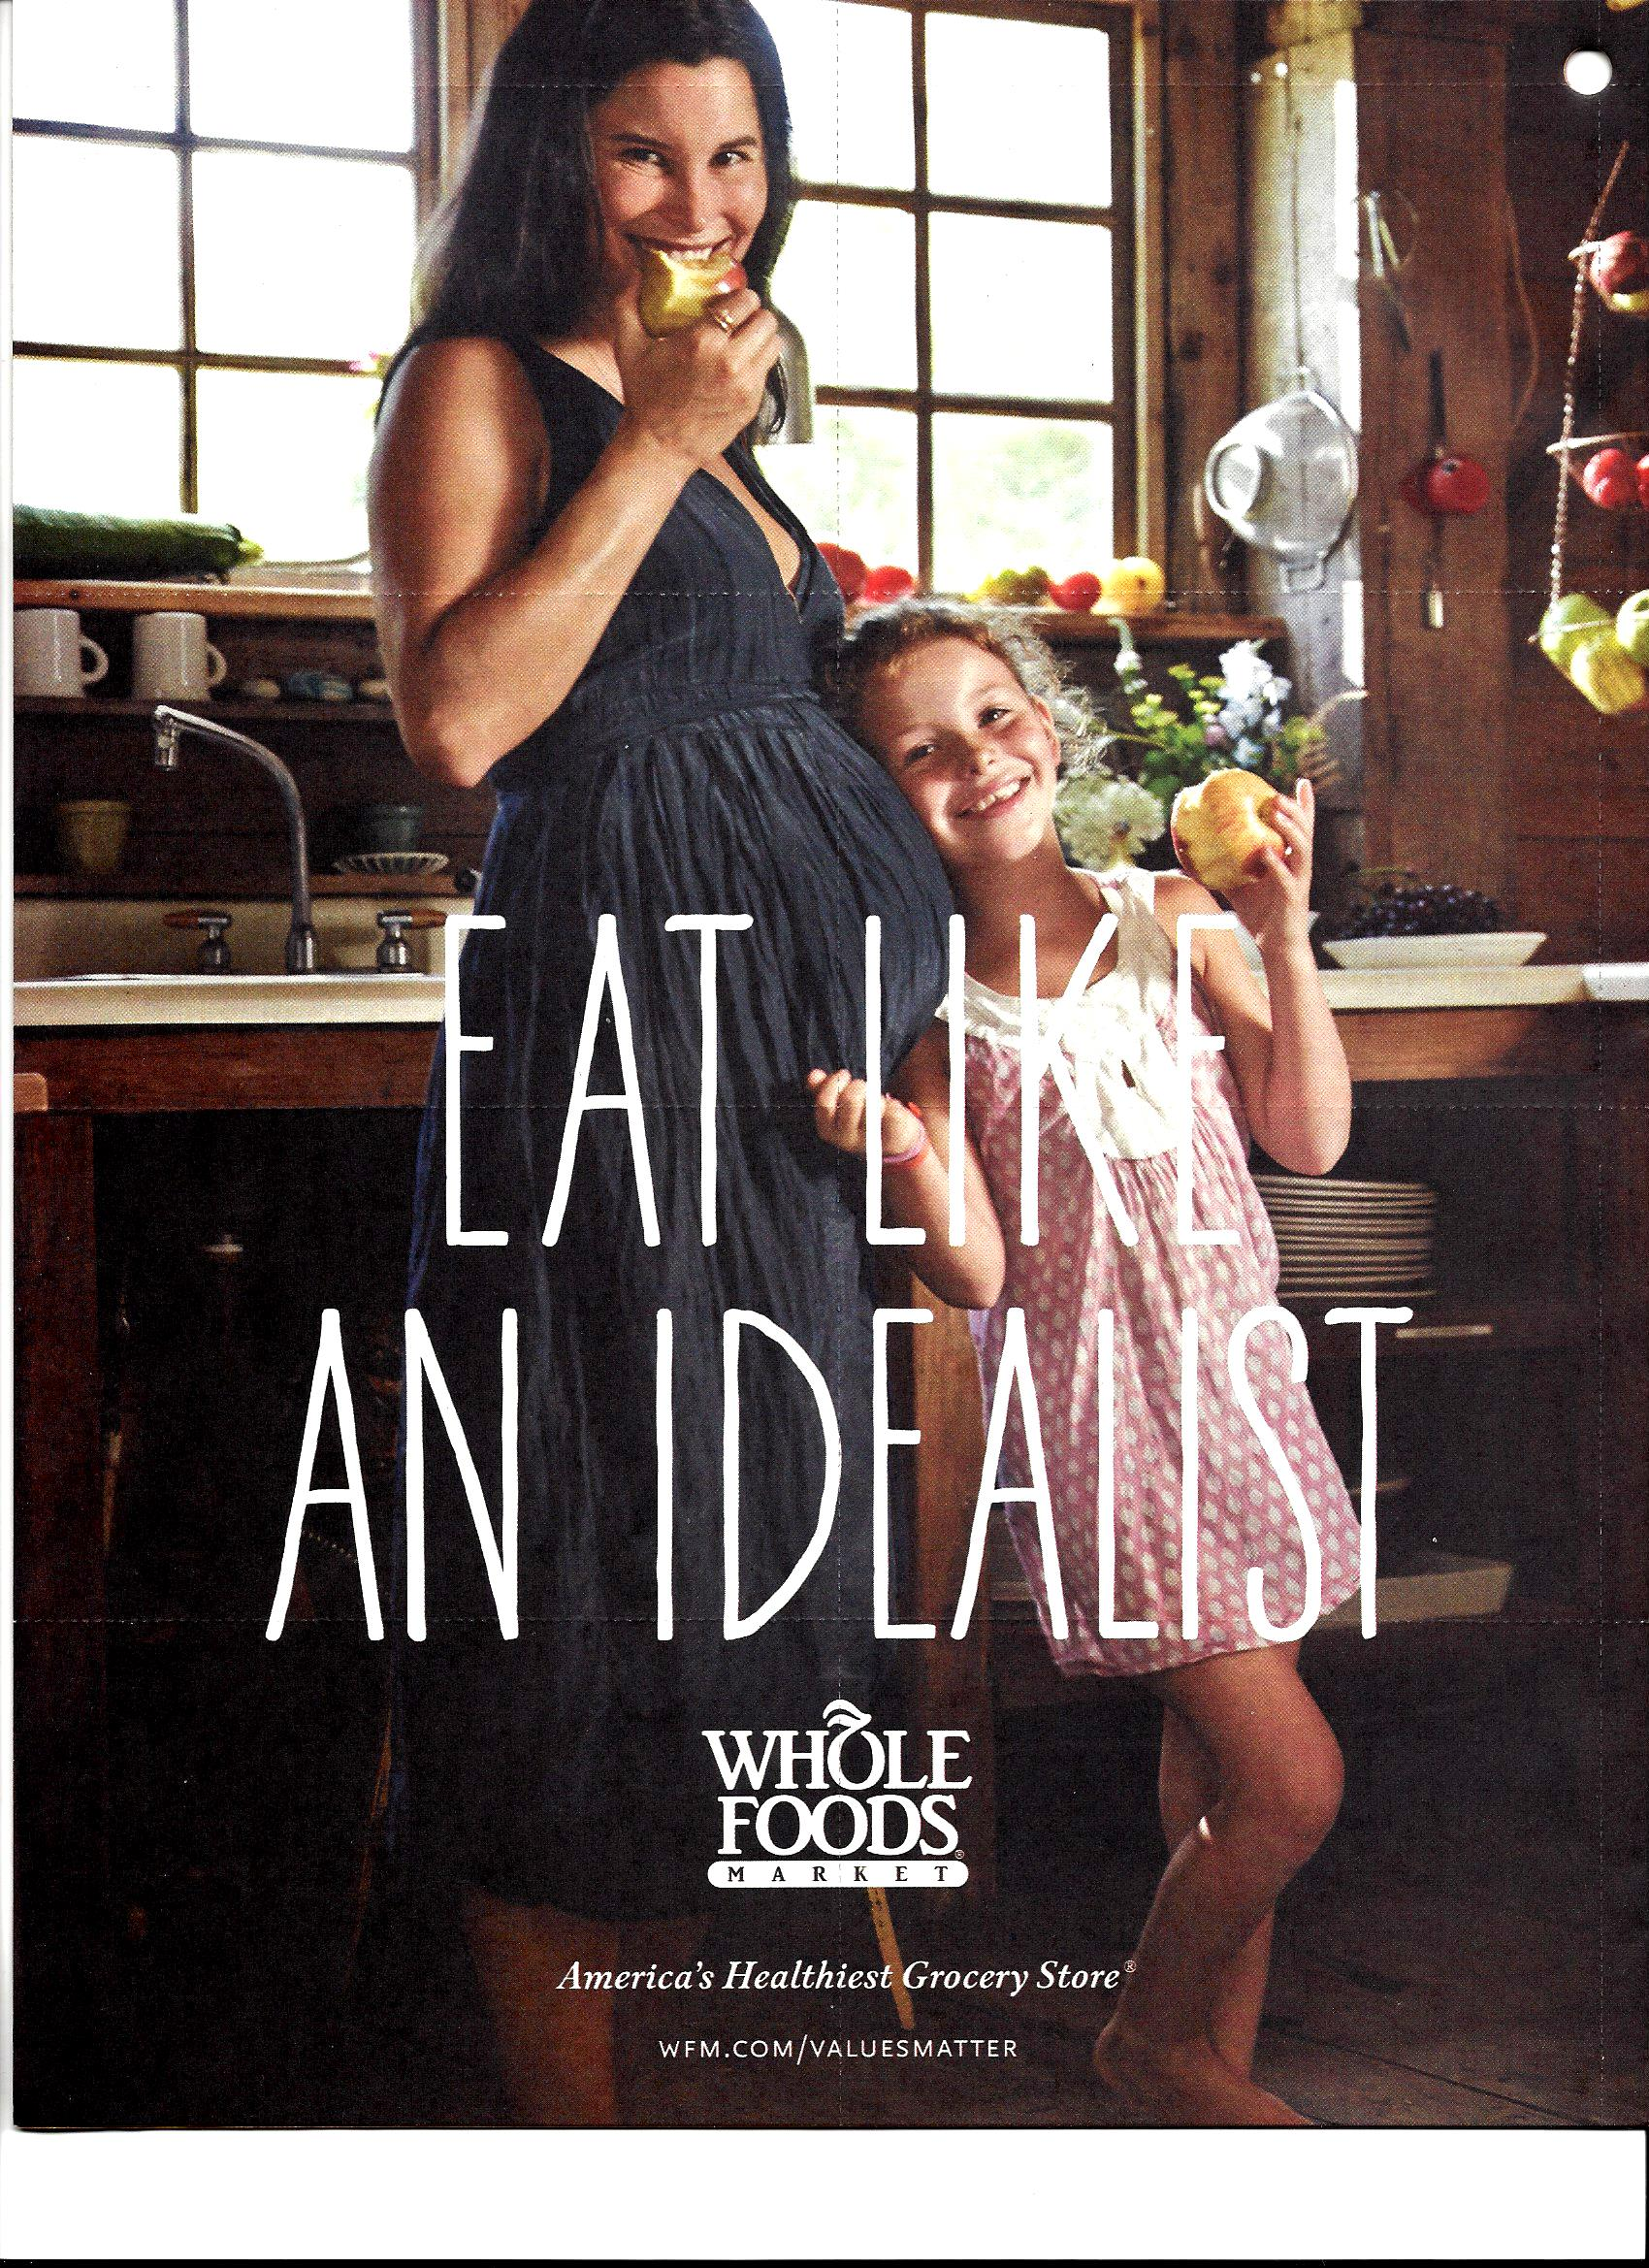 "WHOLE FOOD - WHOLE IDEALISM vs WHOLE PRAGMATISM : WHOLE FOODS LAUNCHED A NATIONAL ADVERTISEMENT CAMPAIGN INTRODUCING THE CONCEPT OF ""IDEALISM"" IN EATING. PRAGMATISM DEMANDS KNOWING ACTIONS THROUGH THE EXPERIENCE OF CONSEQUENCES. THIS PHOTO IMAGE MAY SUGGEST THAT PREGNANCY IS THE CONSEQUENCE OF A NATURALIST LIFESTYLE WHICH INCLUDES THE PRINCIPLES OF IDEALISM IN EATING."